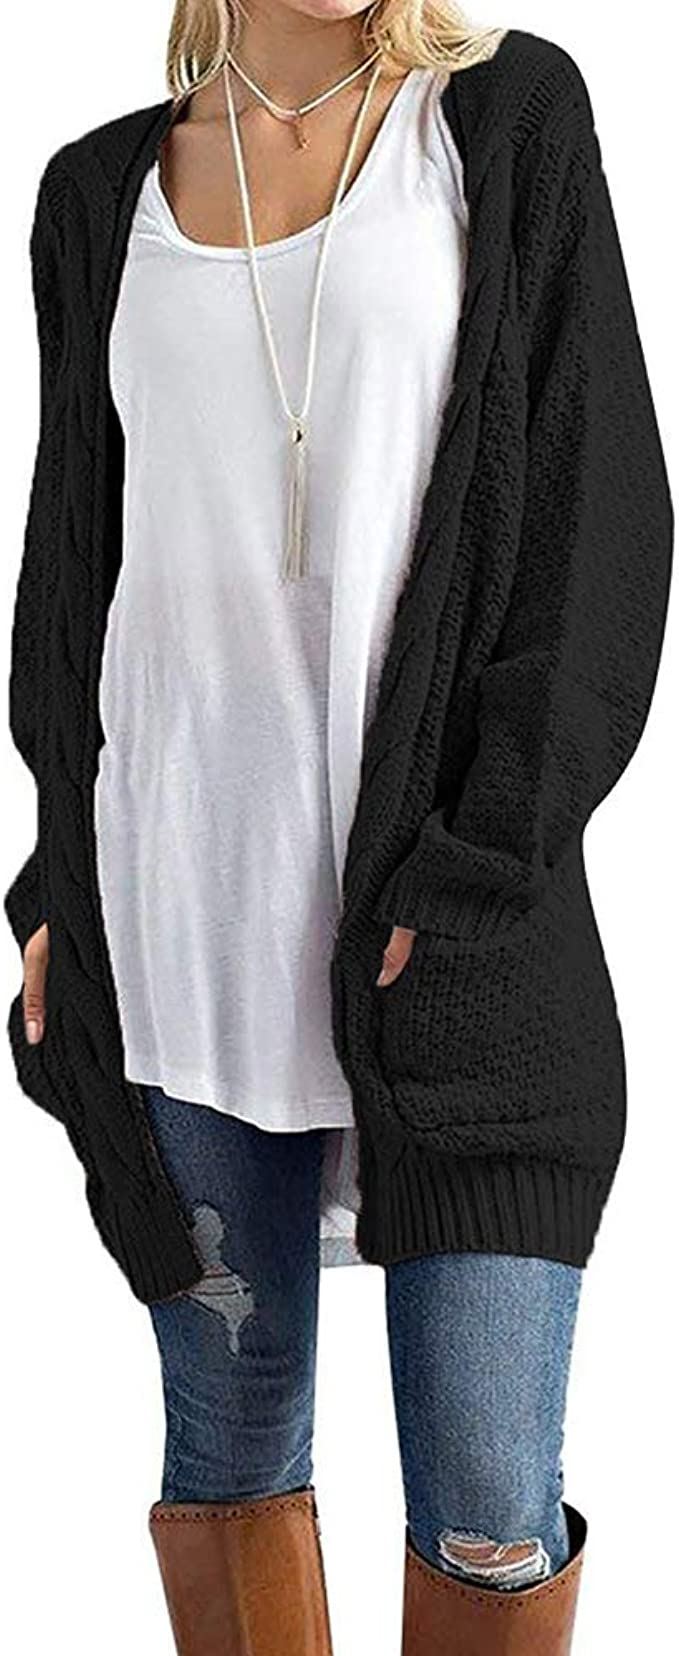 New Ladies Lace Back Open Pocket Cardigan Womens Long Sleeve